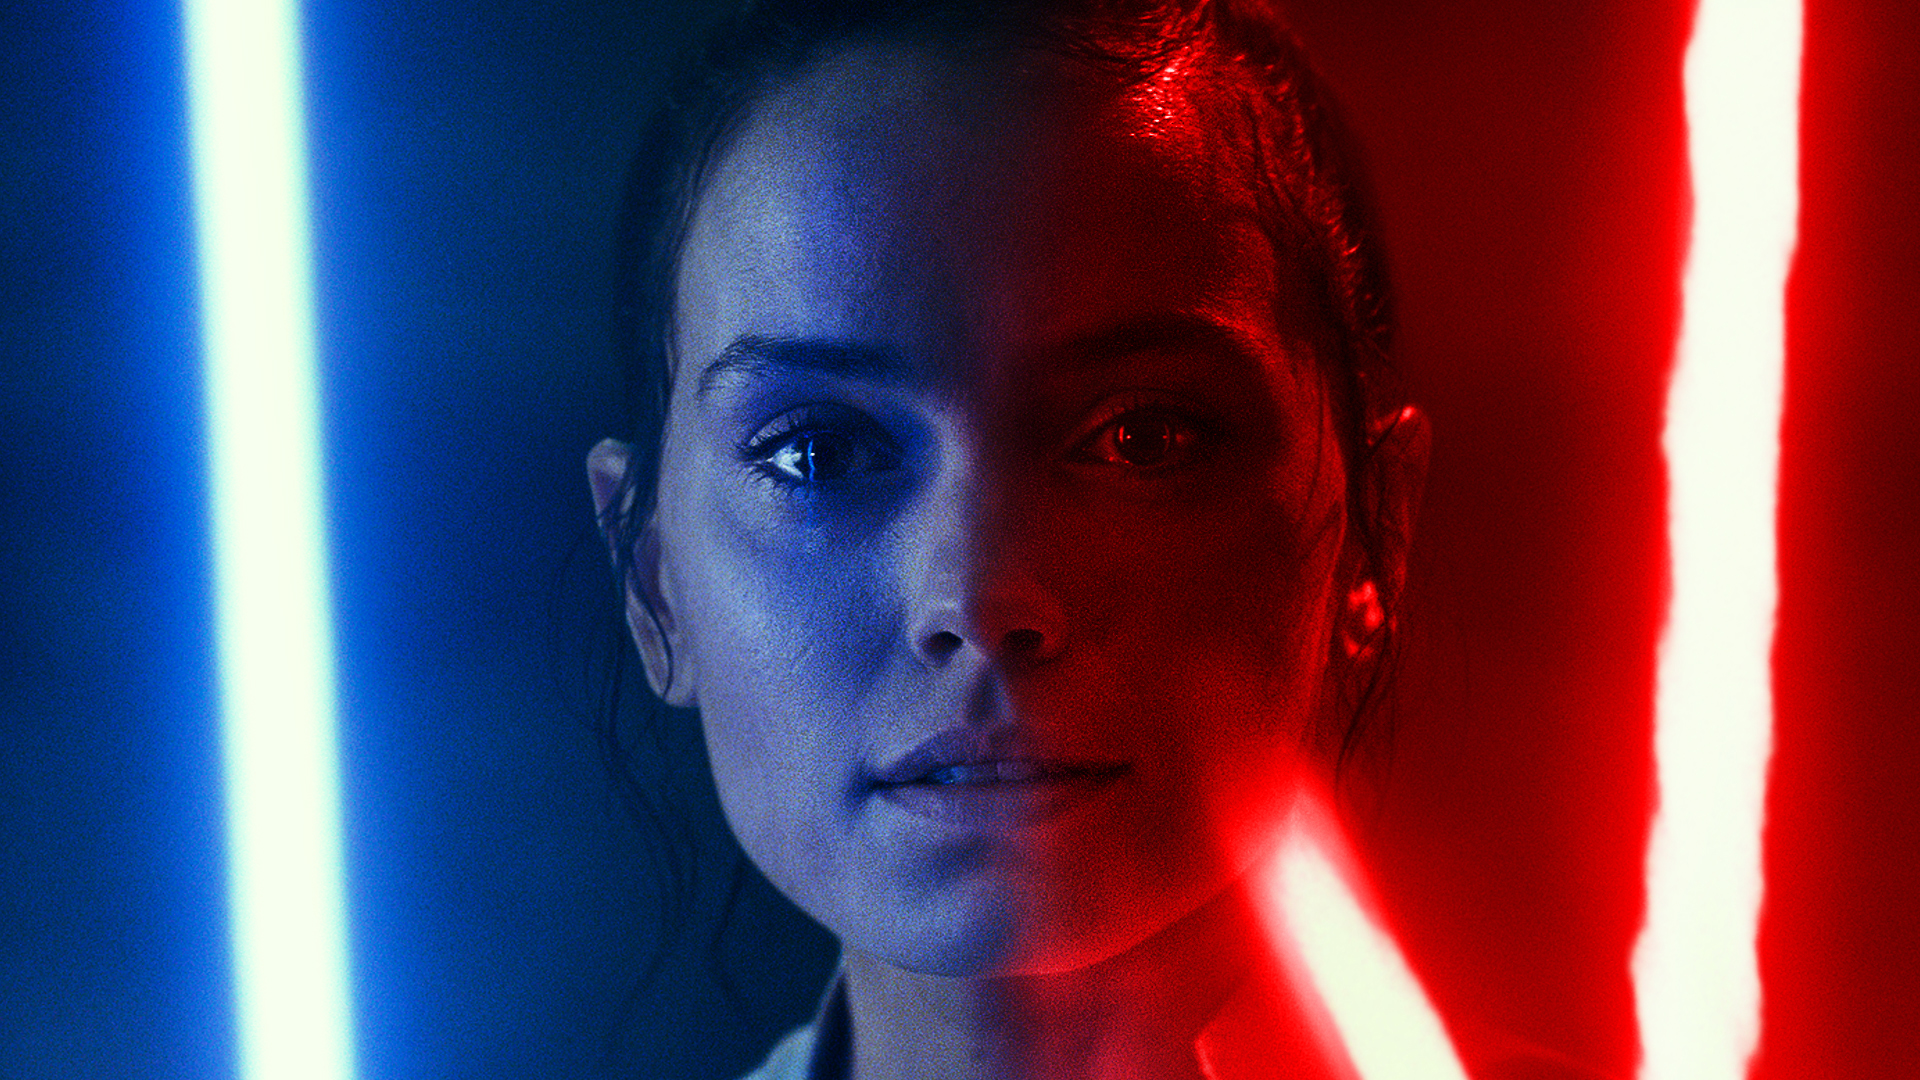 Star Wars: The Rise of Skywalker is a defeat, even in moments of triumph